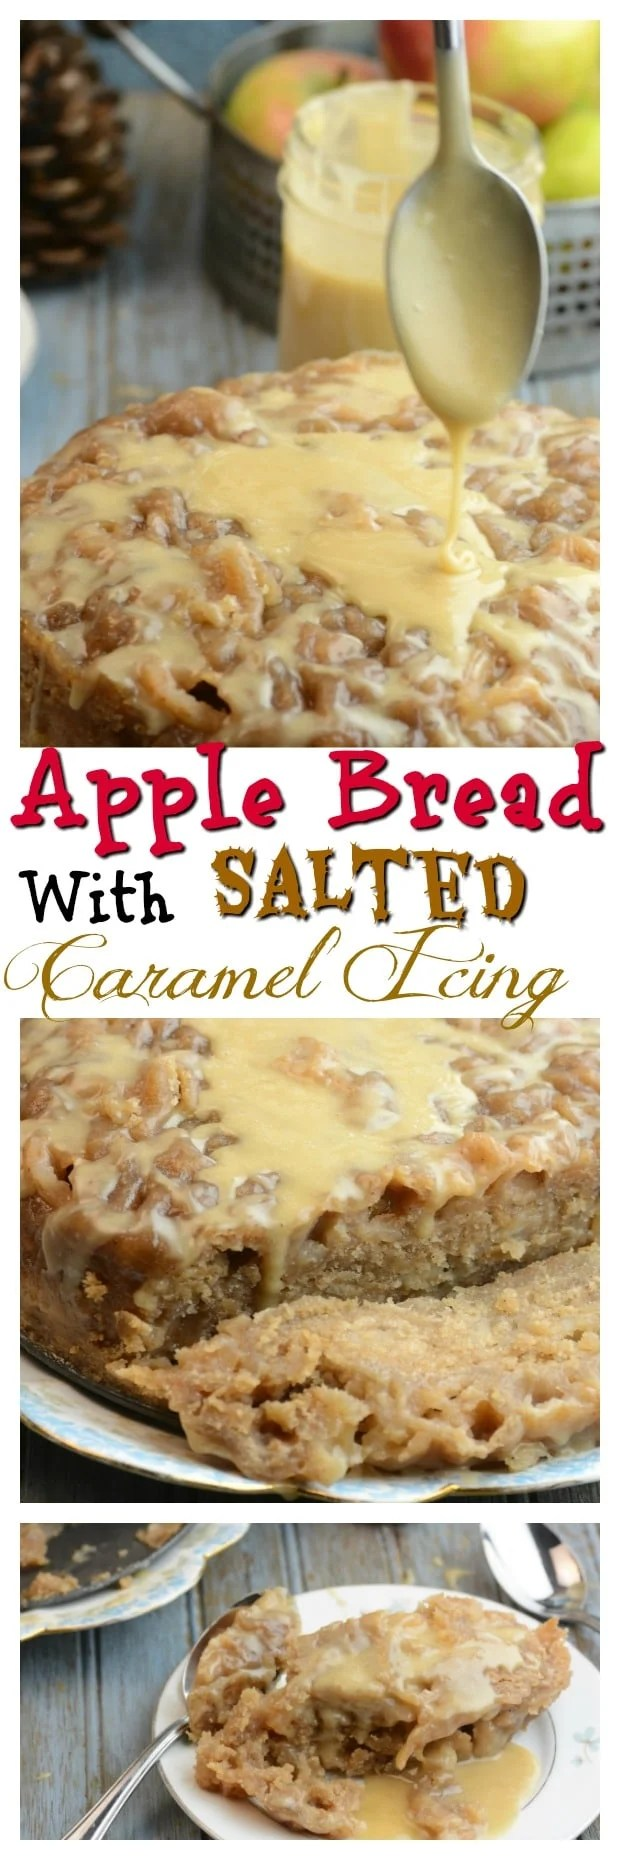 Instant Pot Apple Bread with Salted Caramel Icing